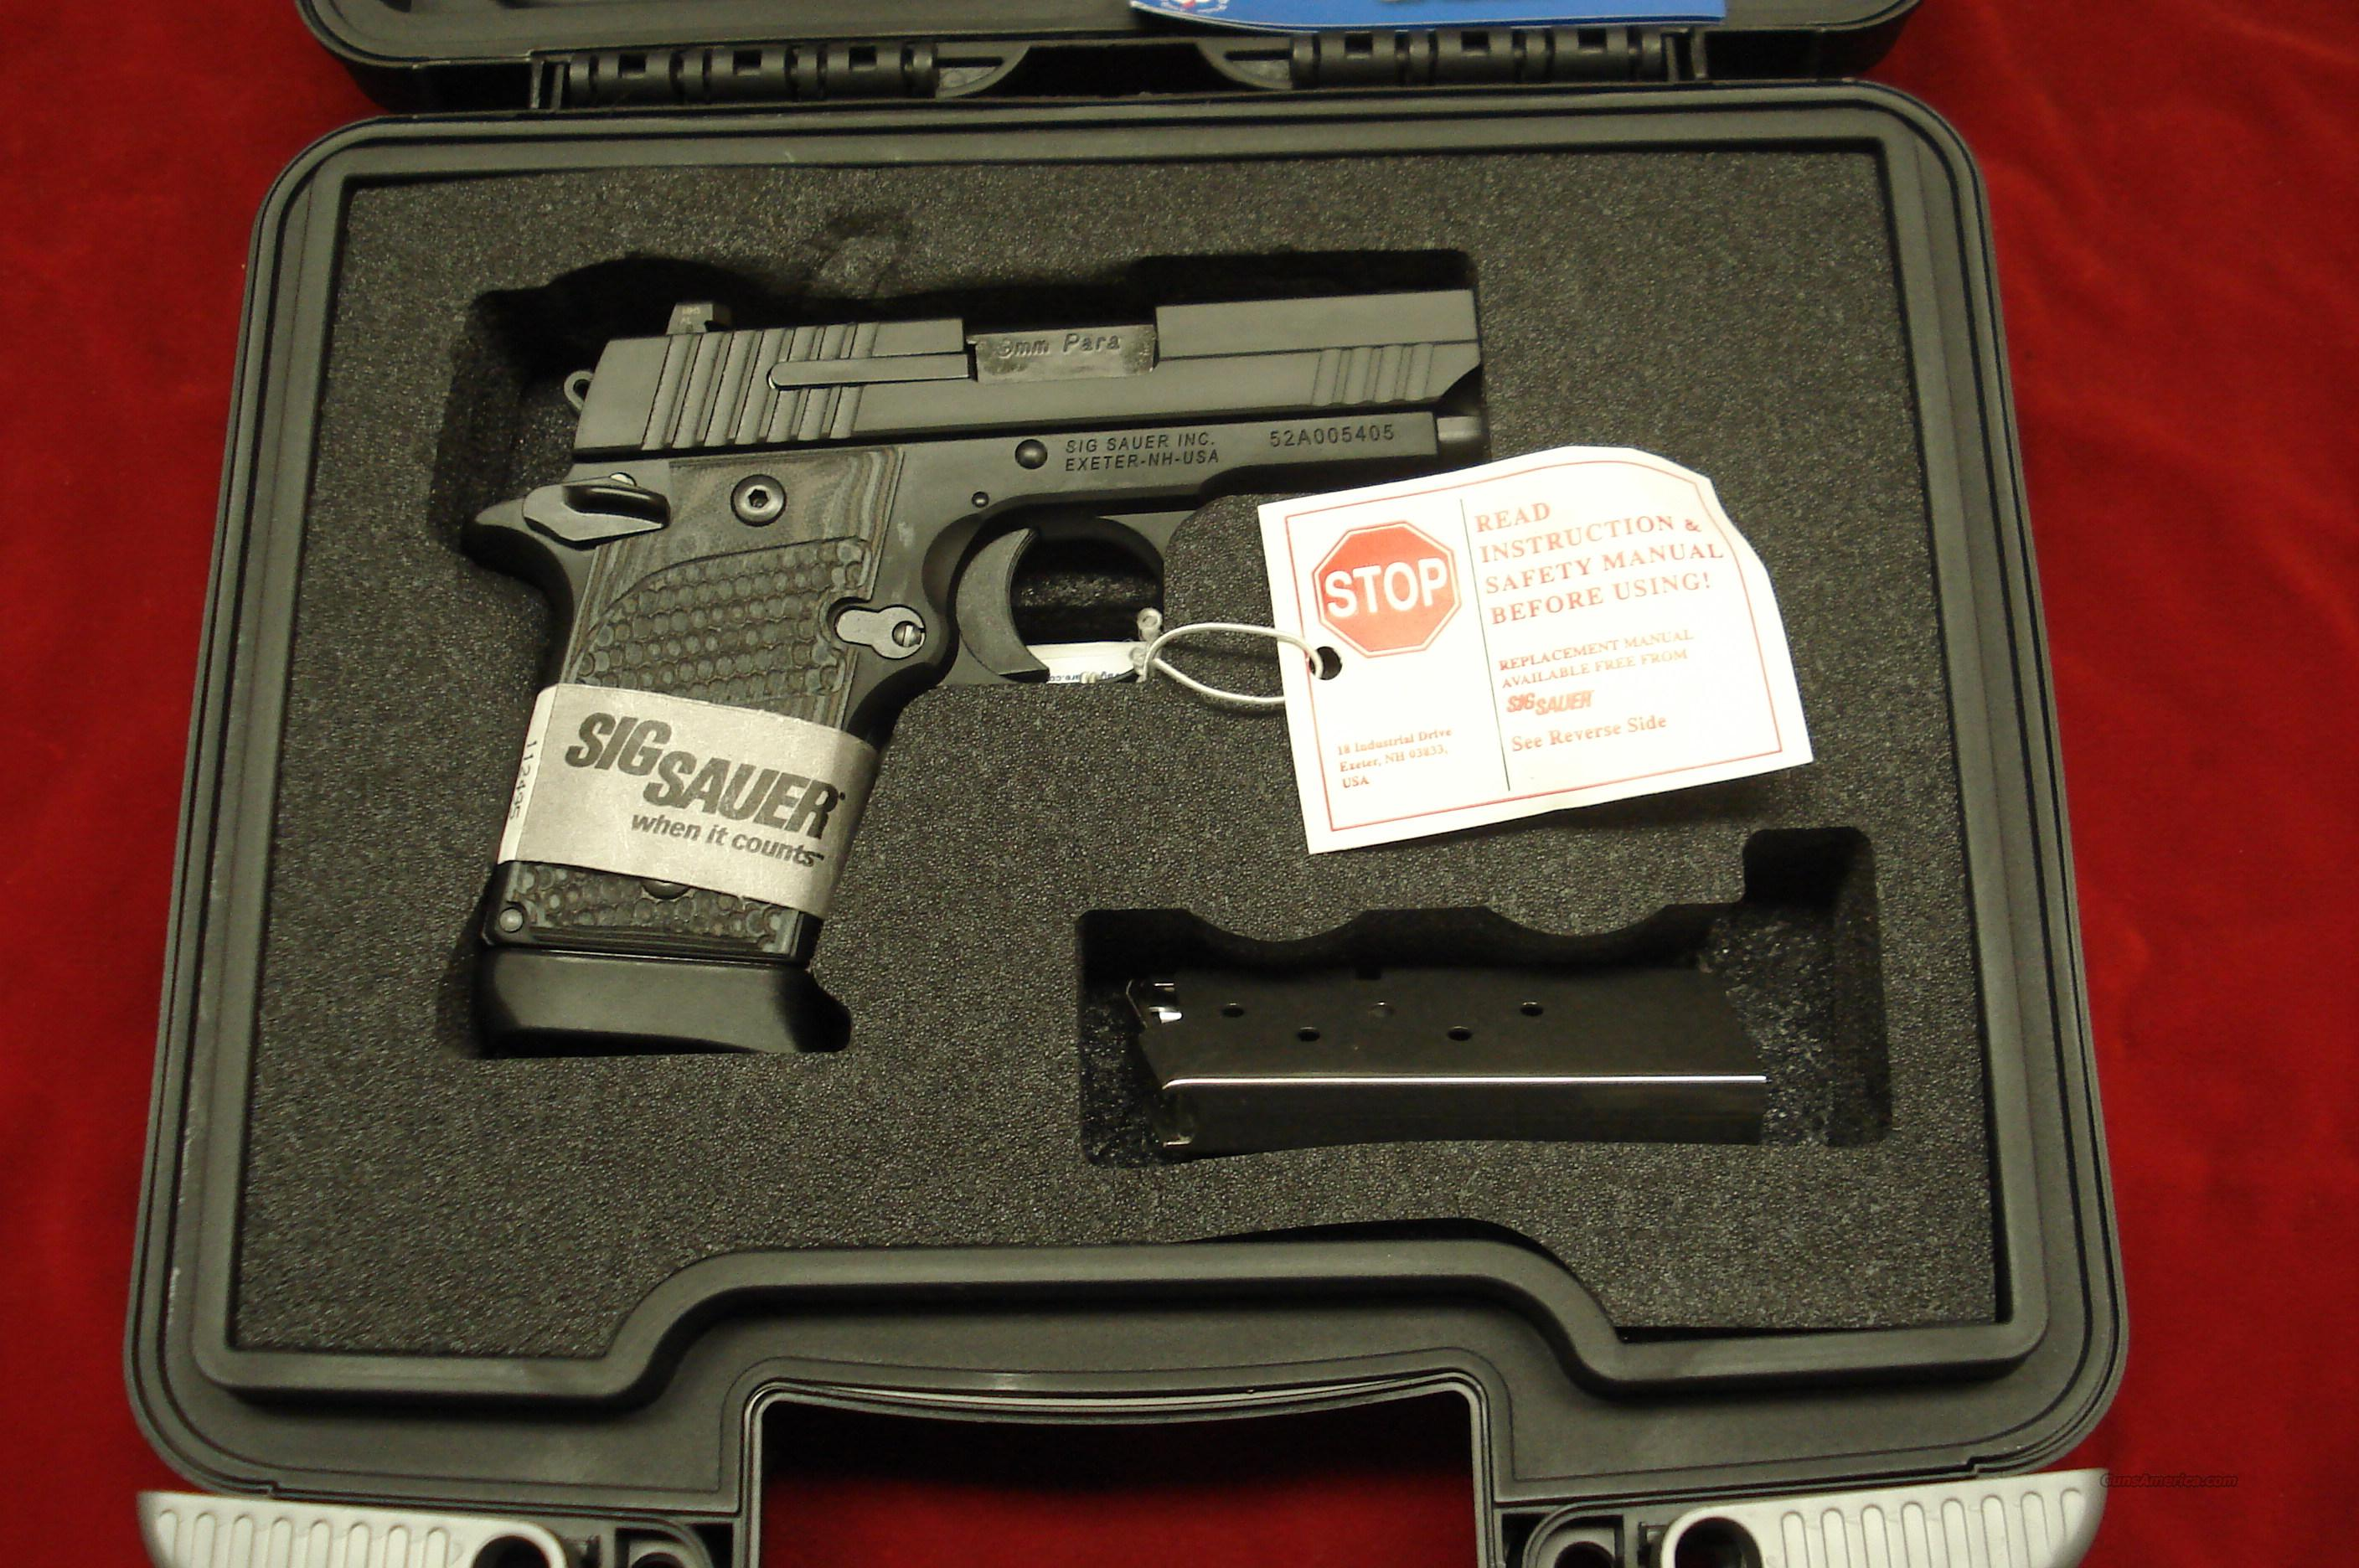 SIG SAUER 938 9MM W/NIGHT SIGHTS AND G-10 GRIPS NEW   (938-9-XTM-BLKGRY-AMBI)  Guns > Pistols > Sig - Sauer/Sigarms Pistols > P938